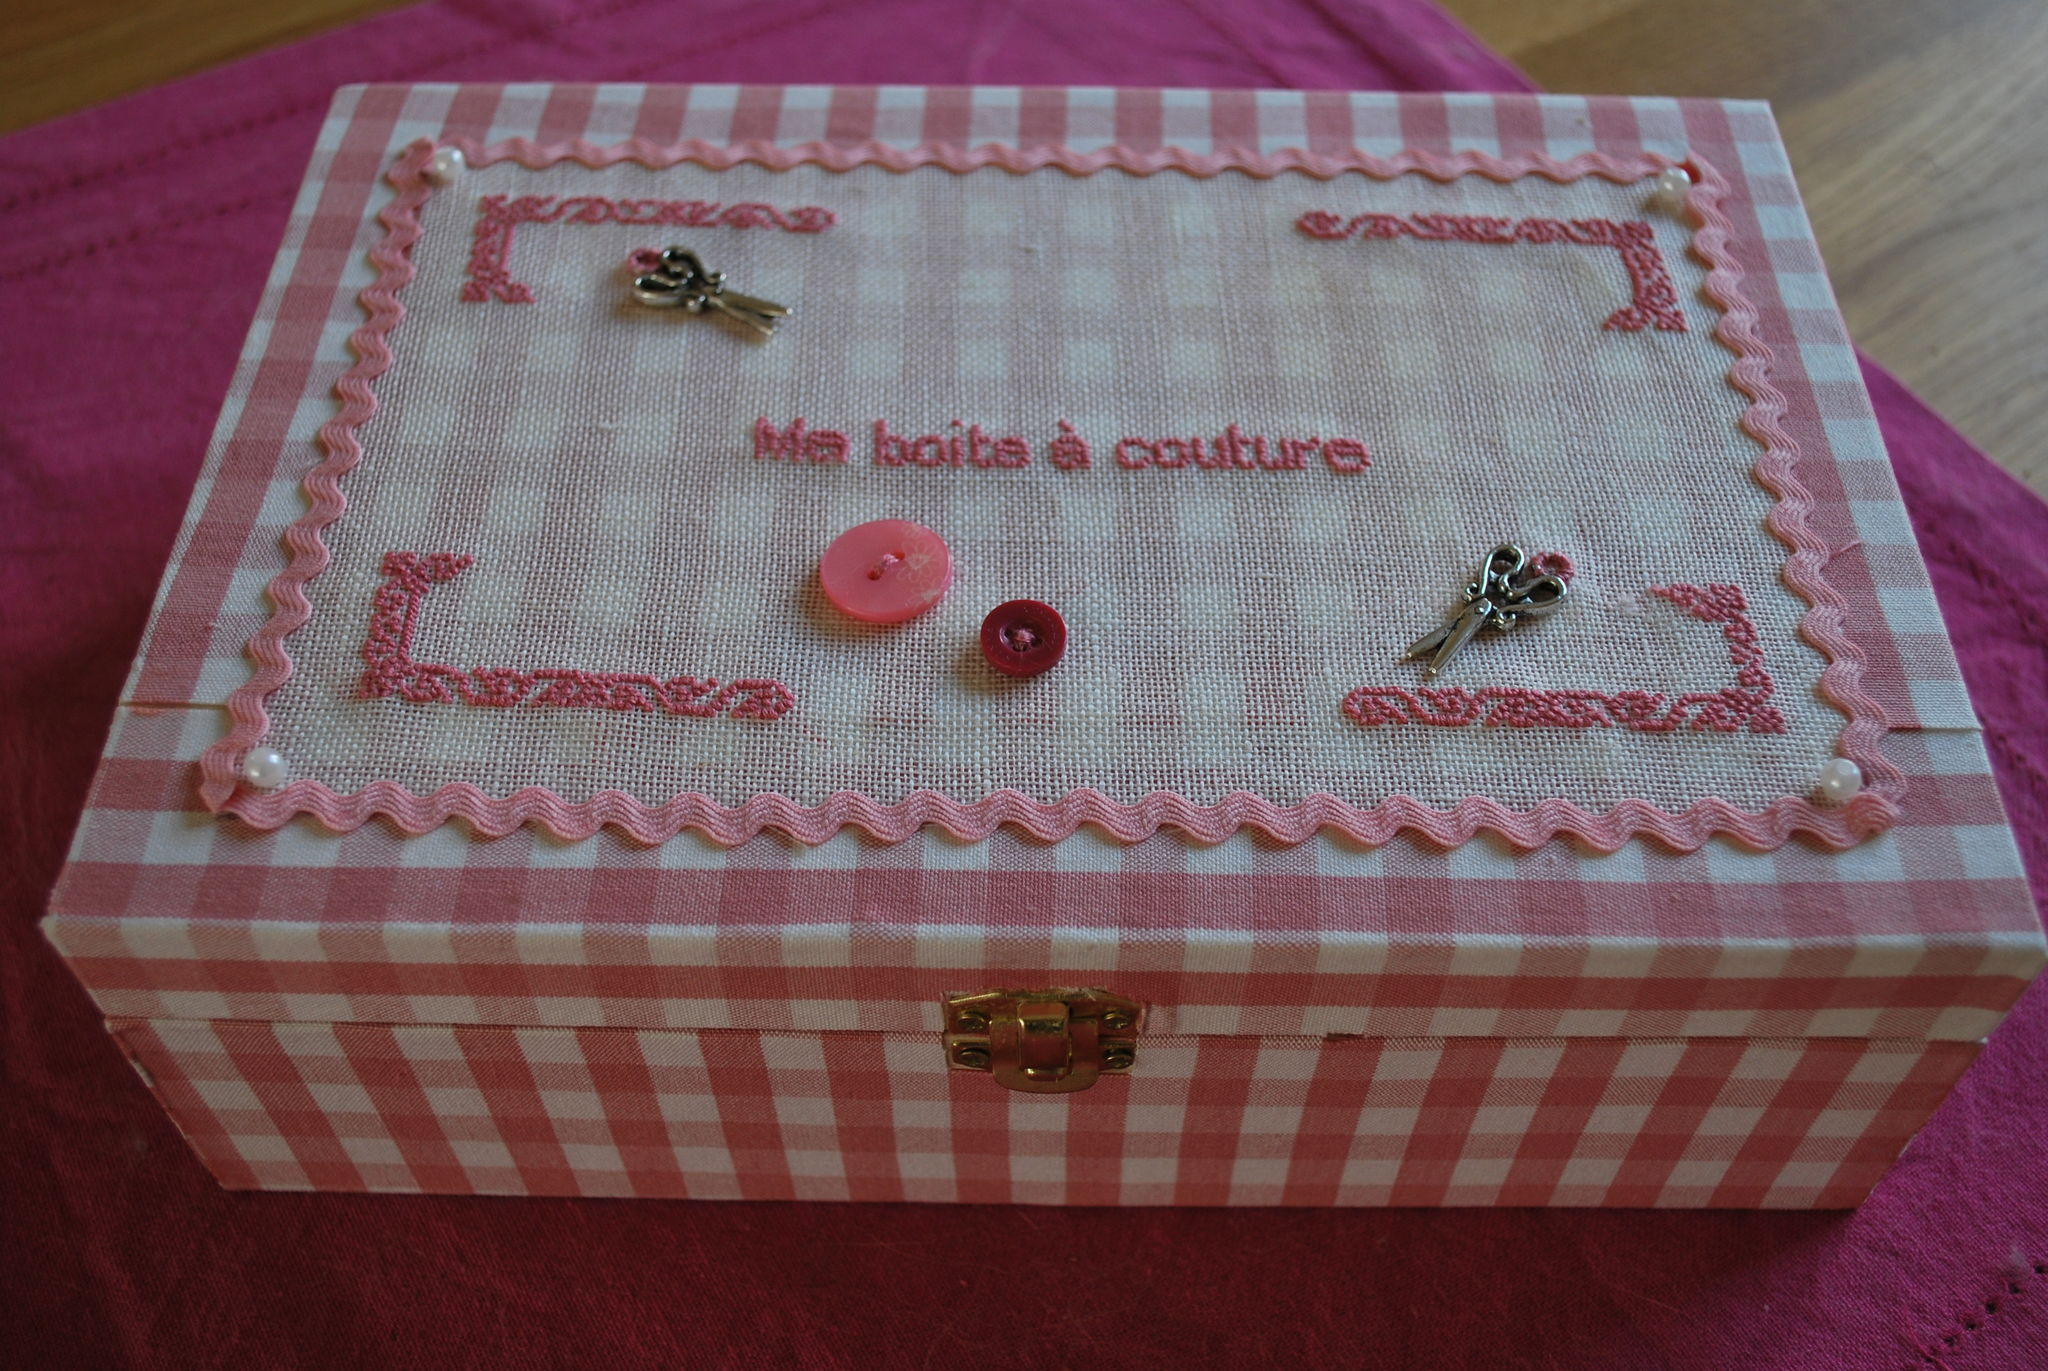 Fabrication d 39 une bo te couture personnalis e le for Boite a bouton couture